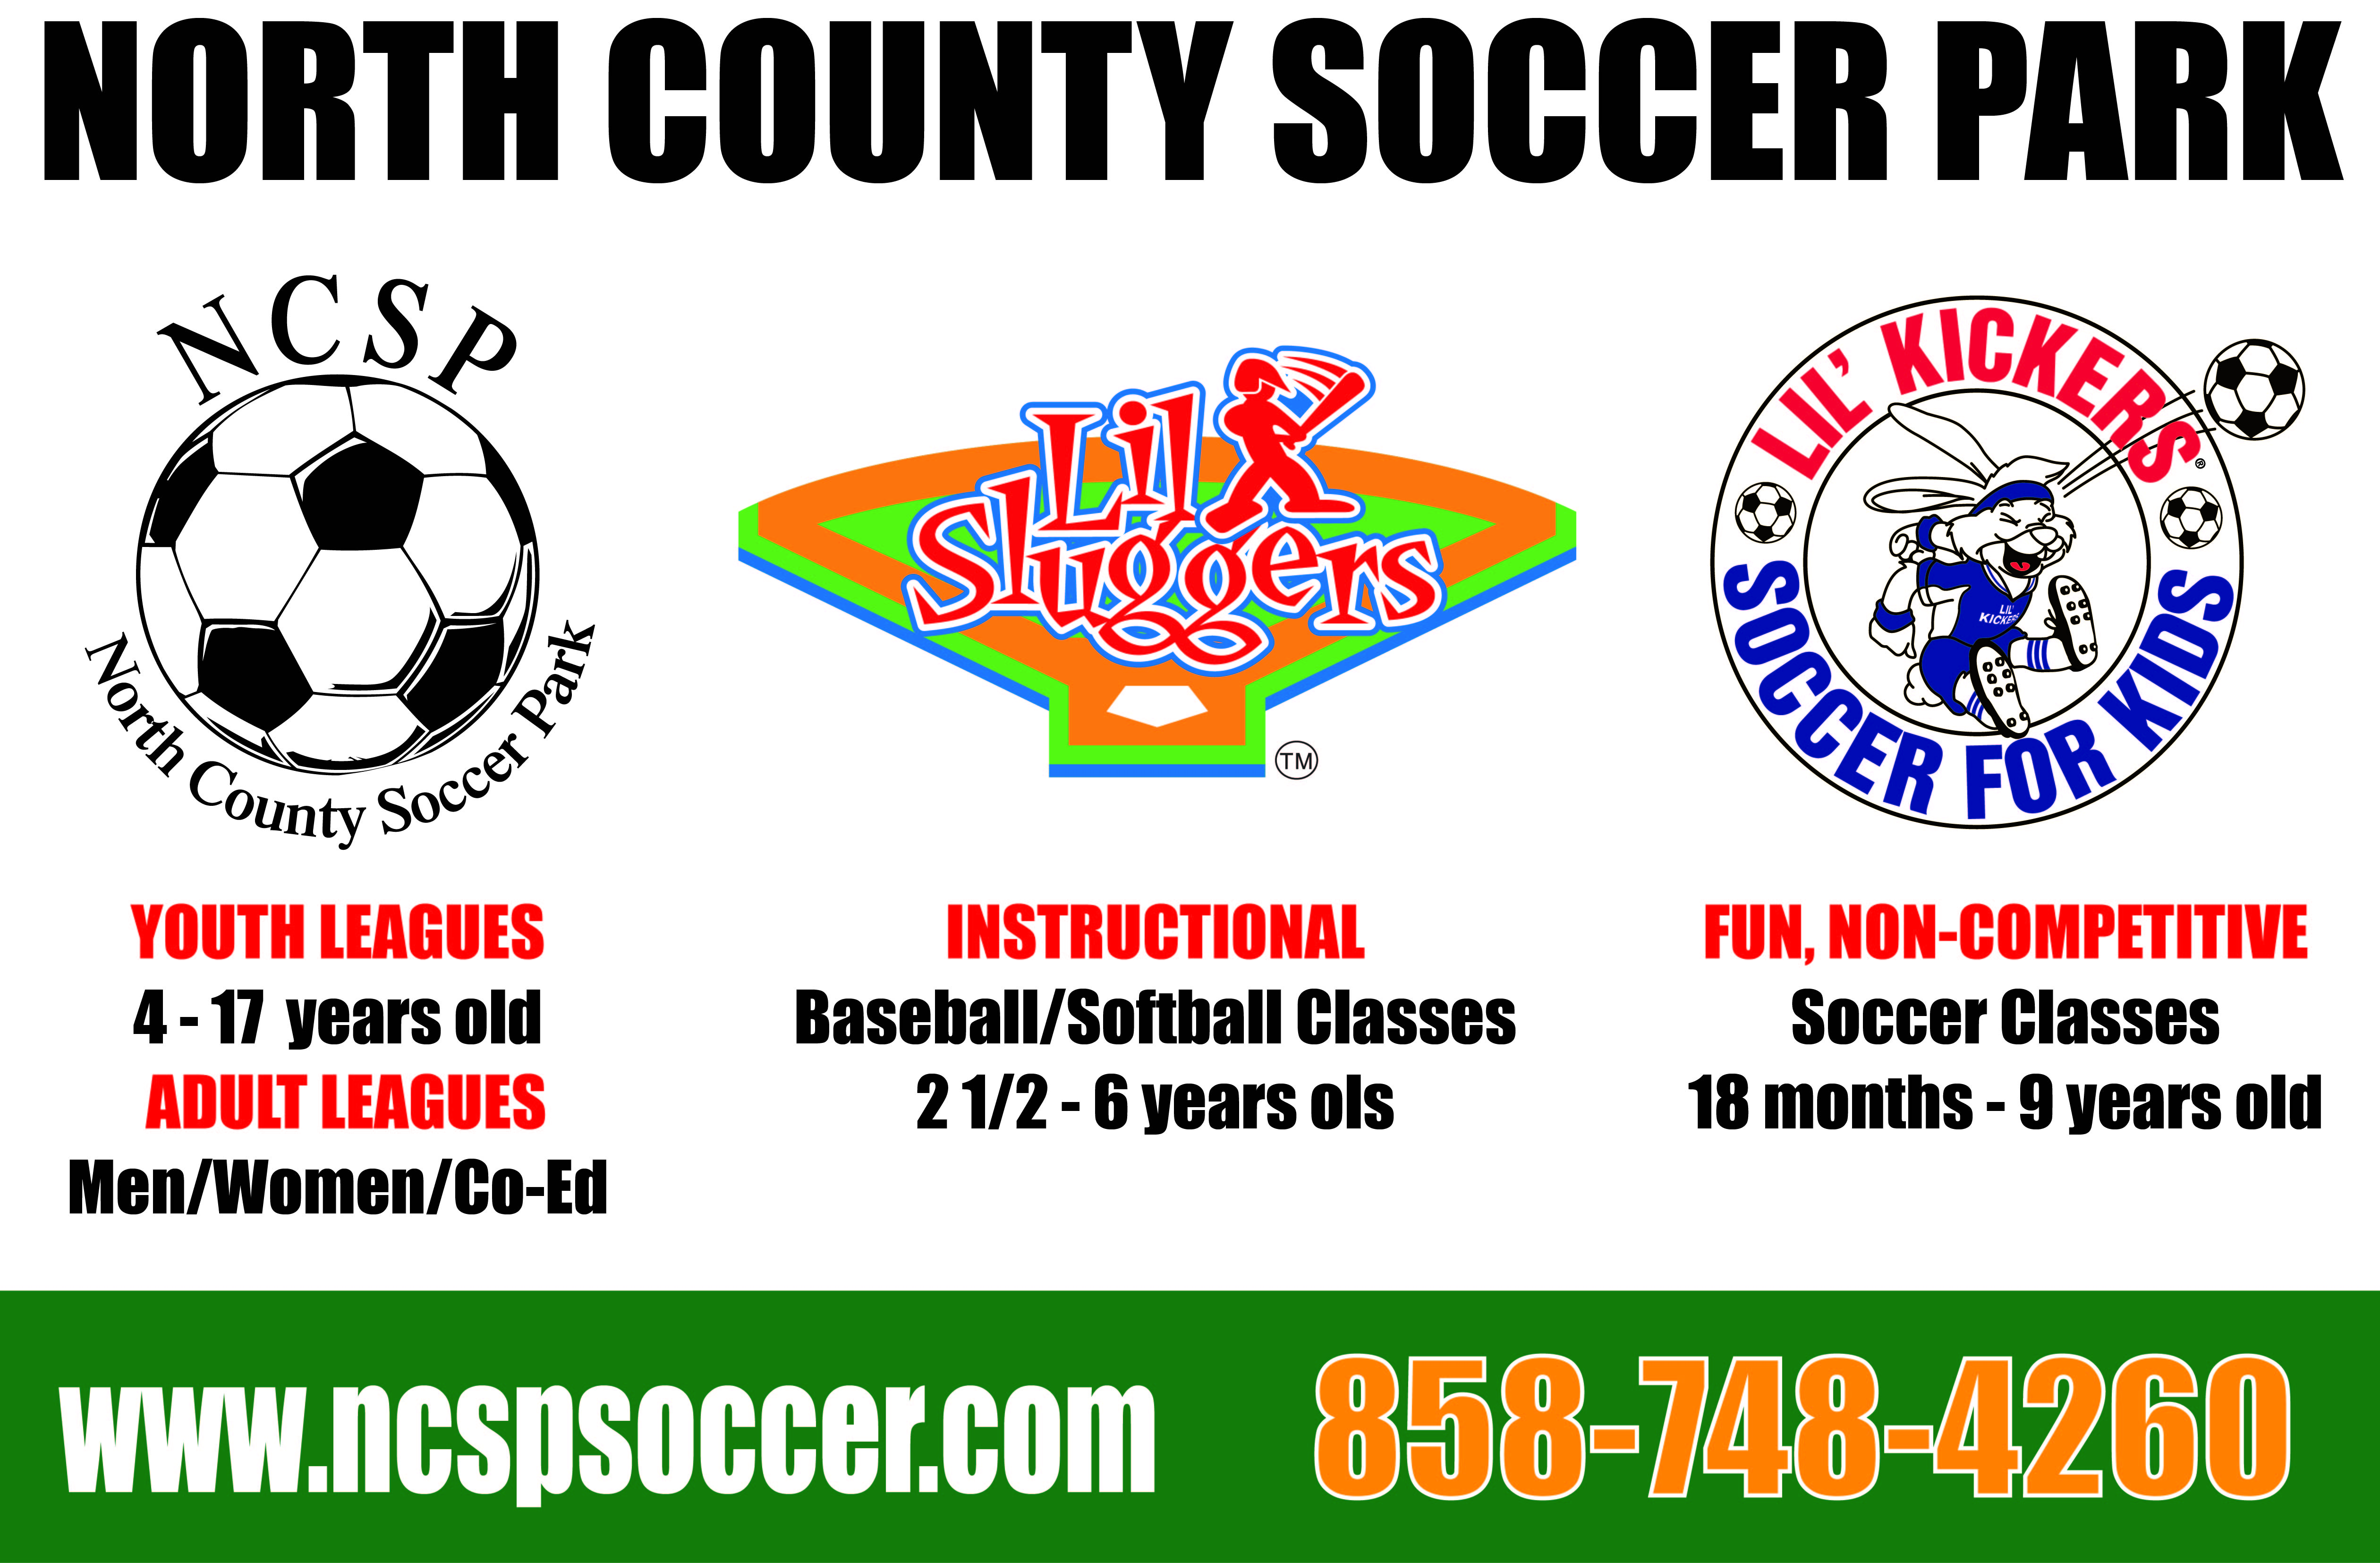 North County Soccer Park